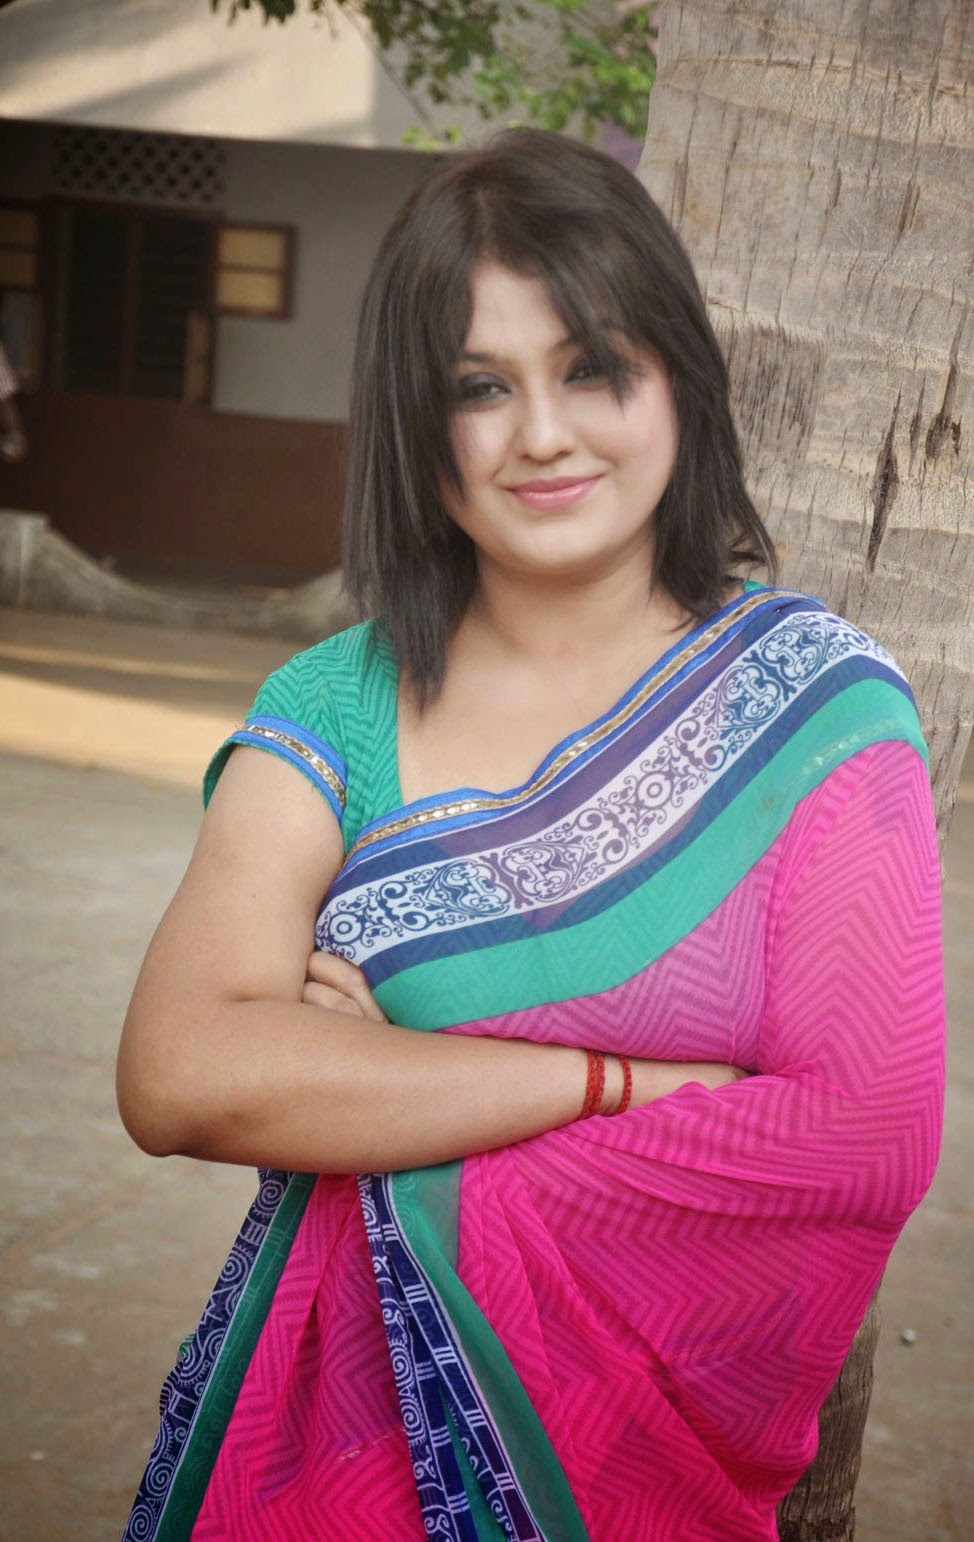 Recommend Indian actress sona hot sorry, this